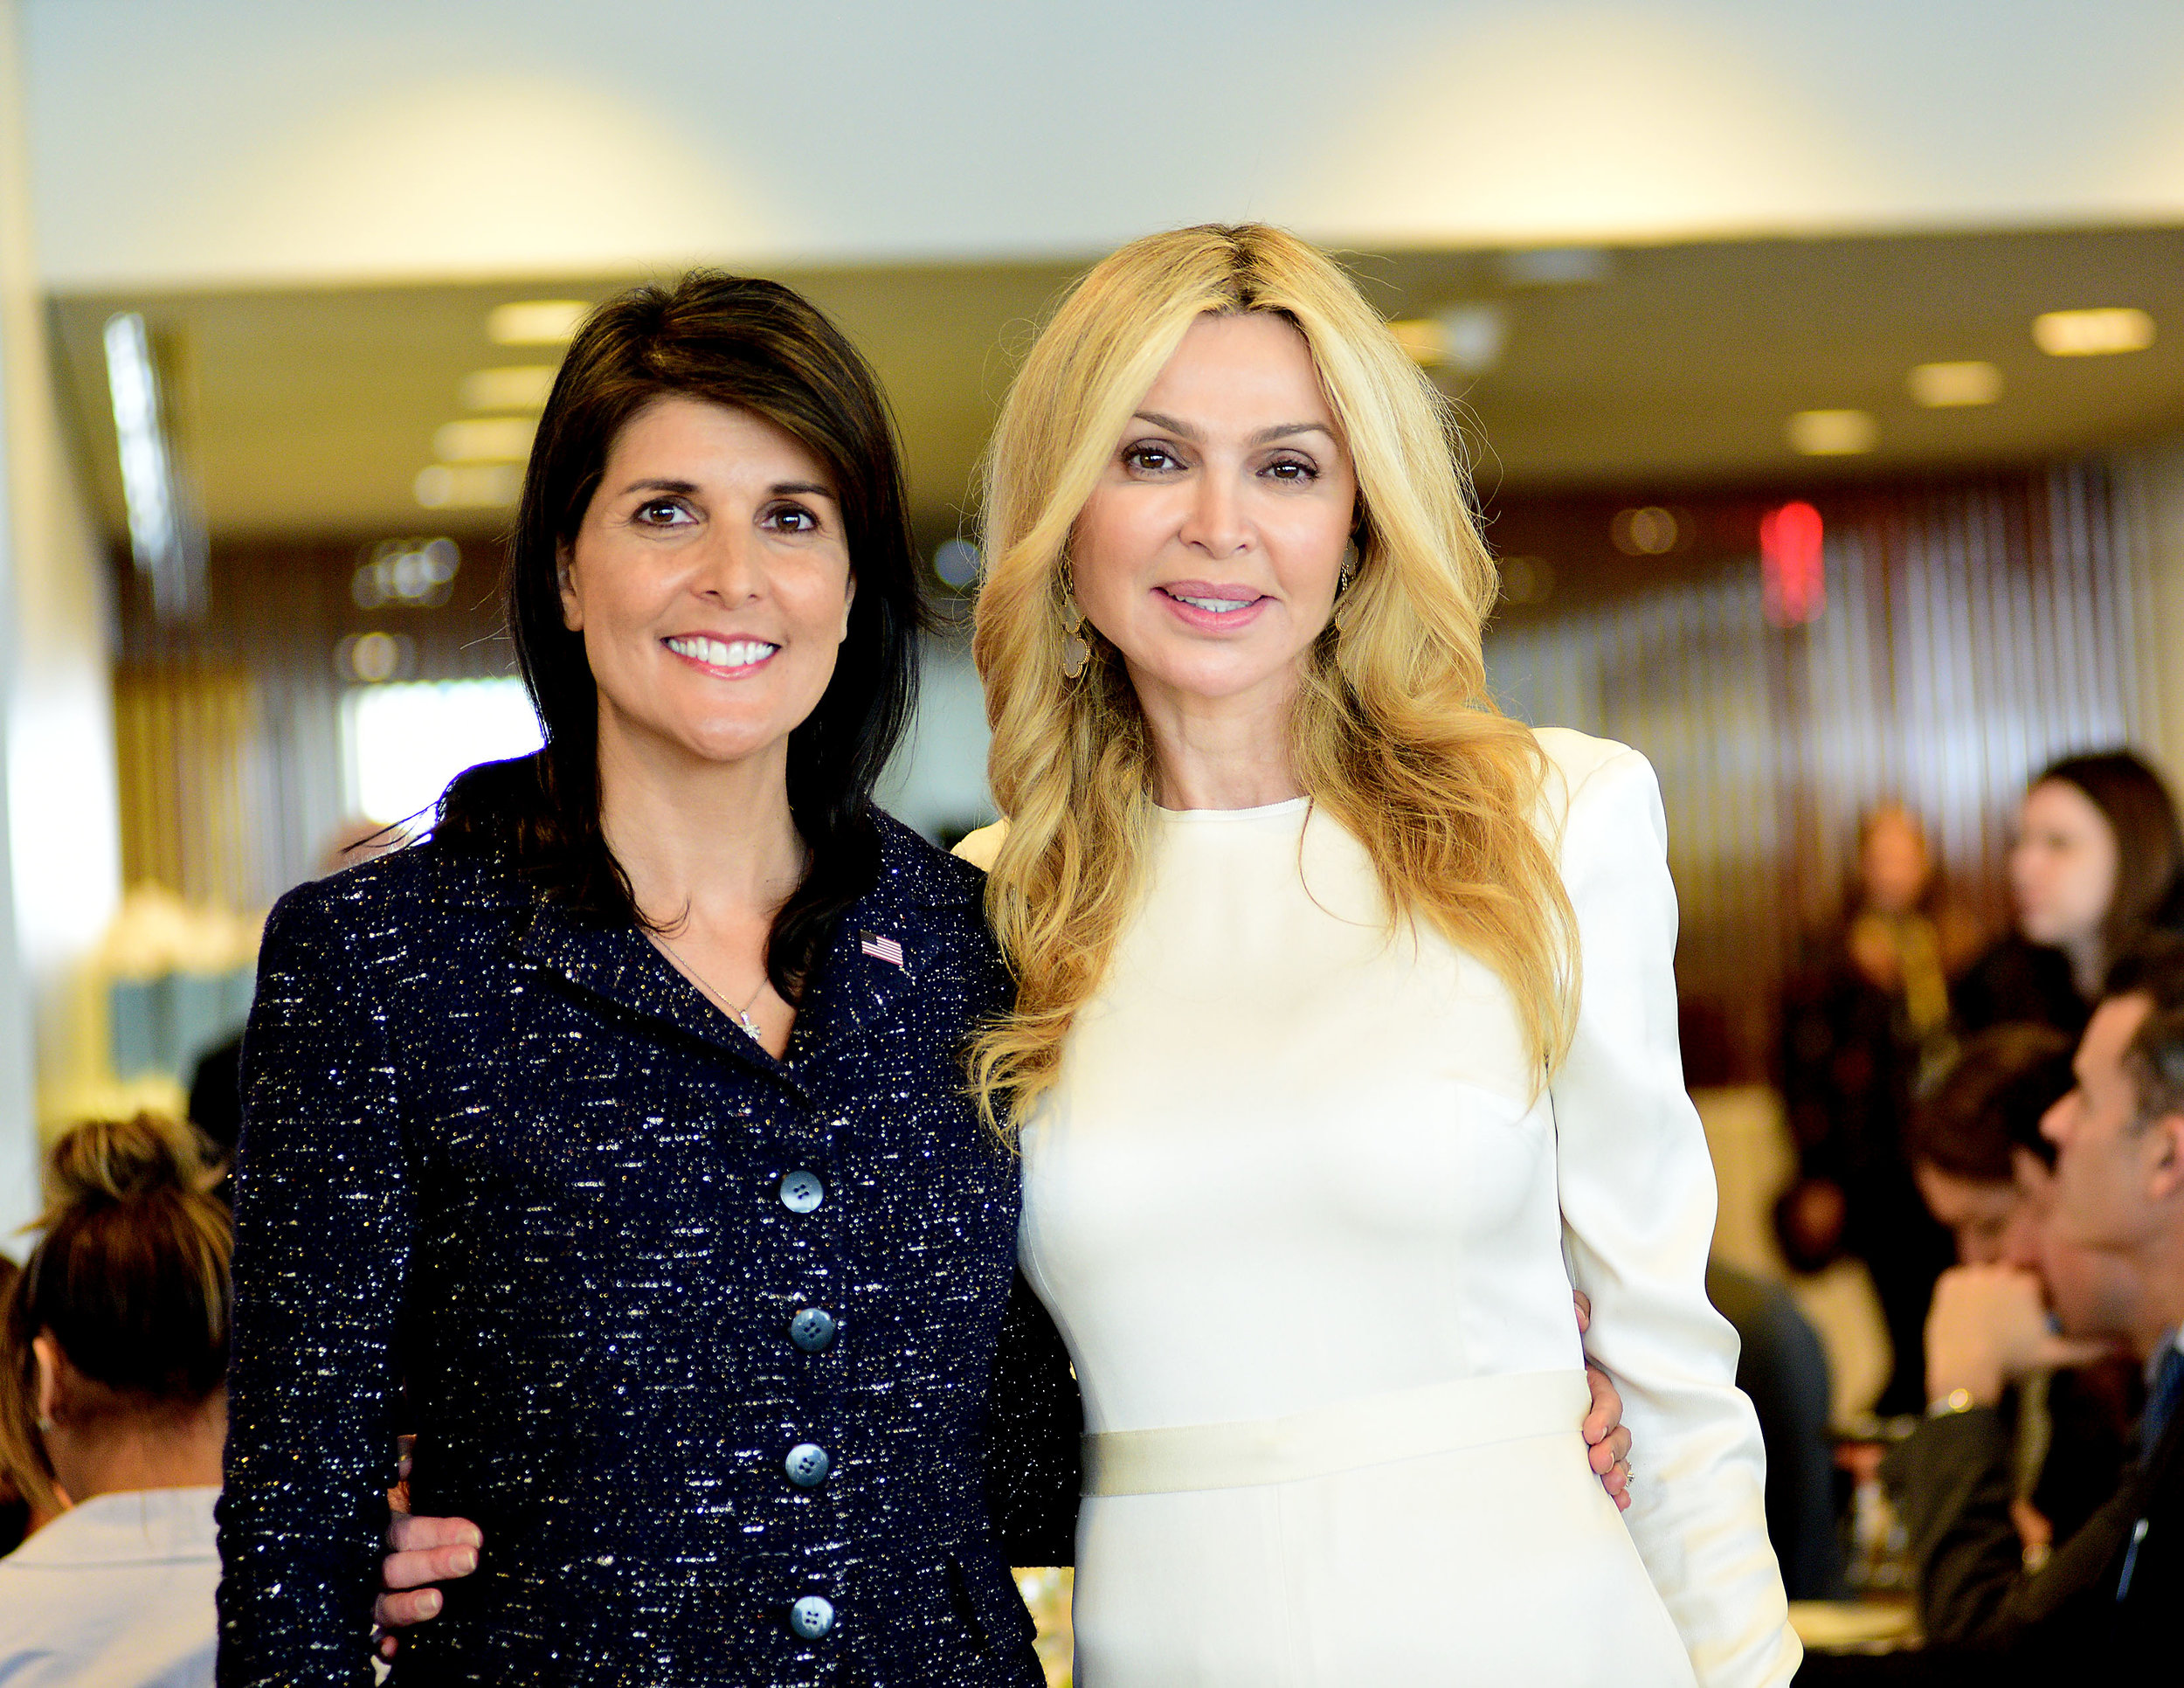 H.E. Ambassador Nikki Haley with Honoree Sheikha Rima Al-Sabah at the UNWFPA Annual Awards Luncheon on March 8, 2018